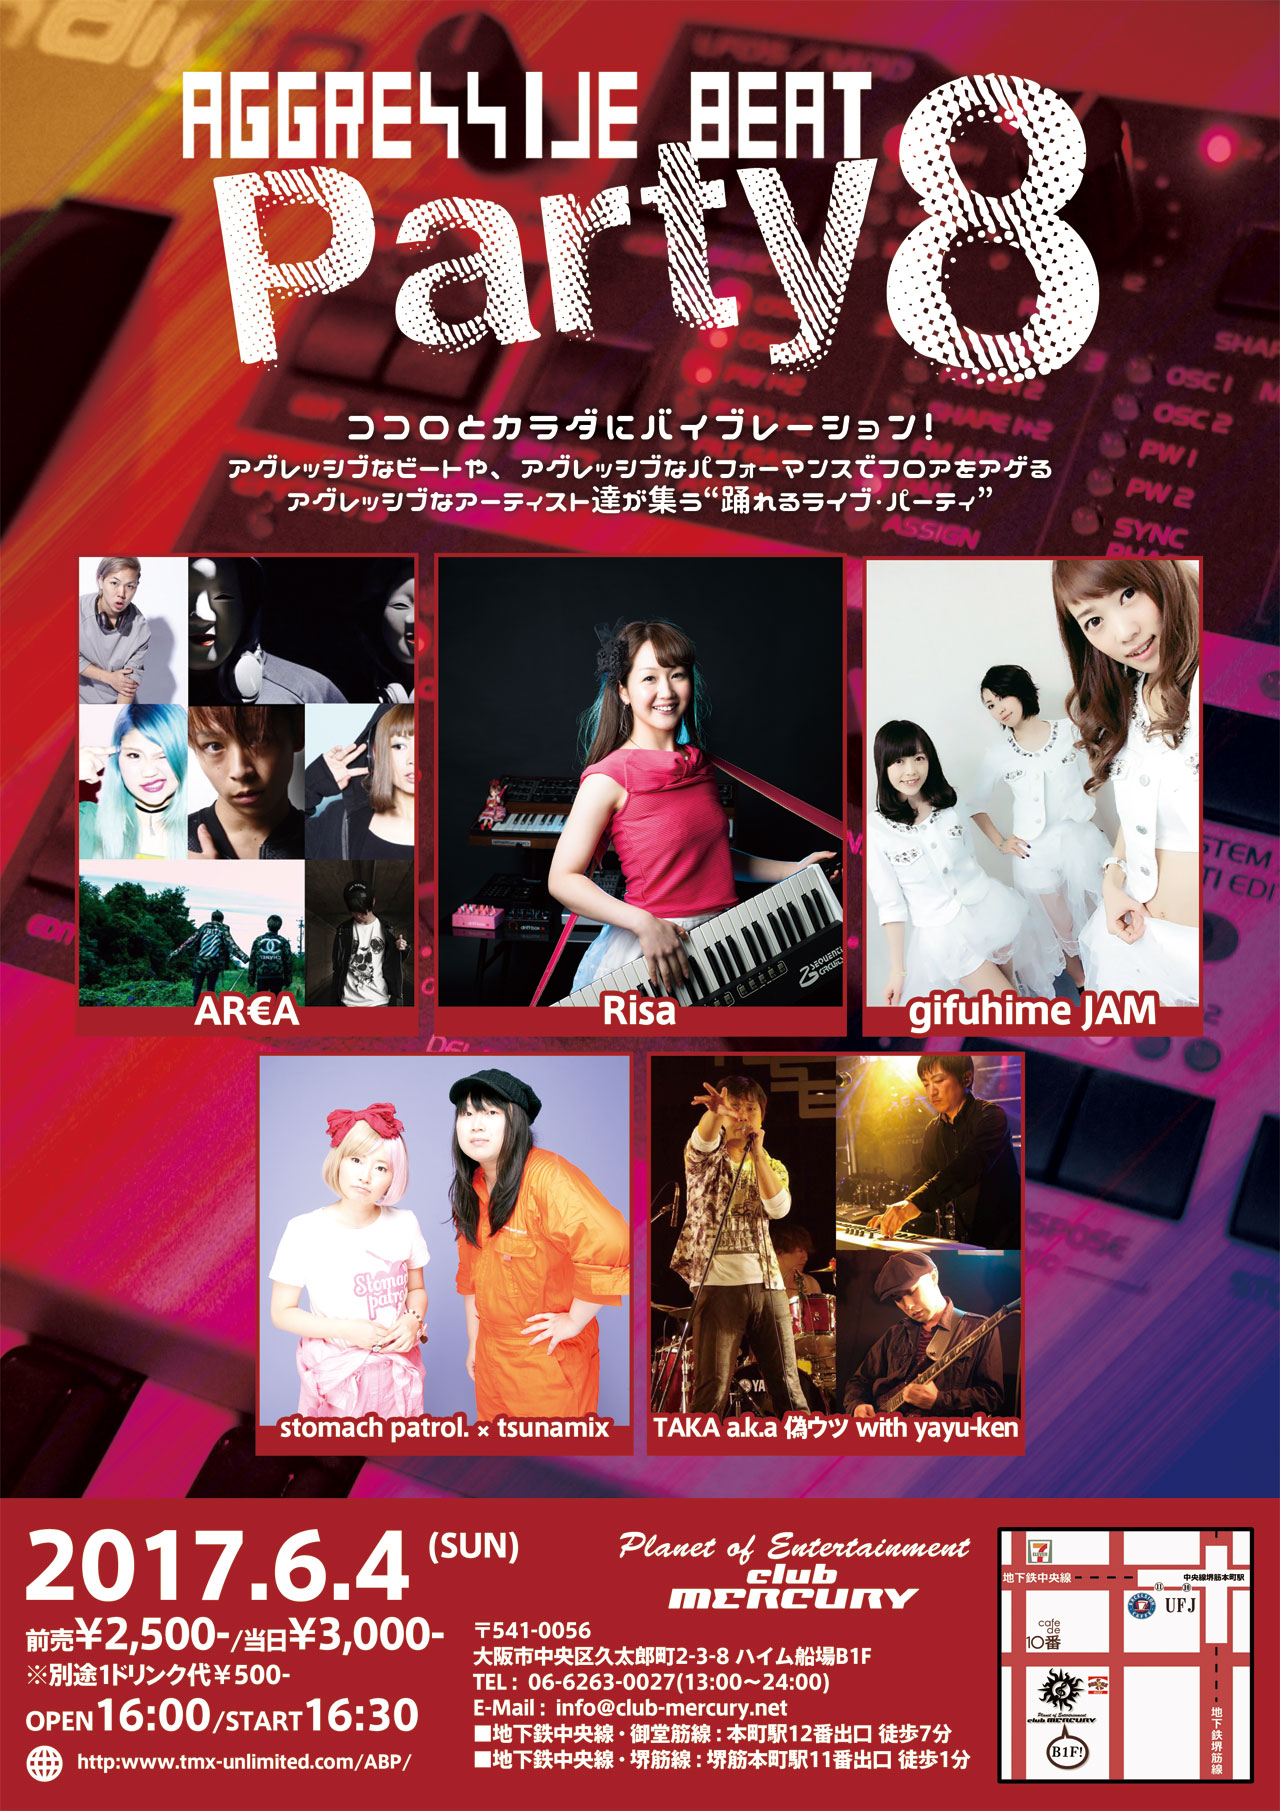 AGGRESSIVE BEAT PARTY 8